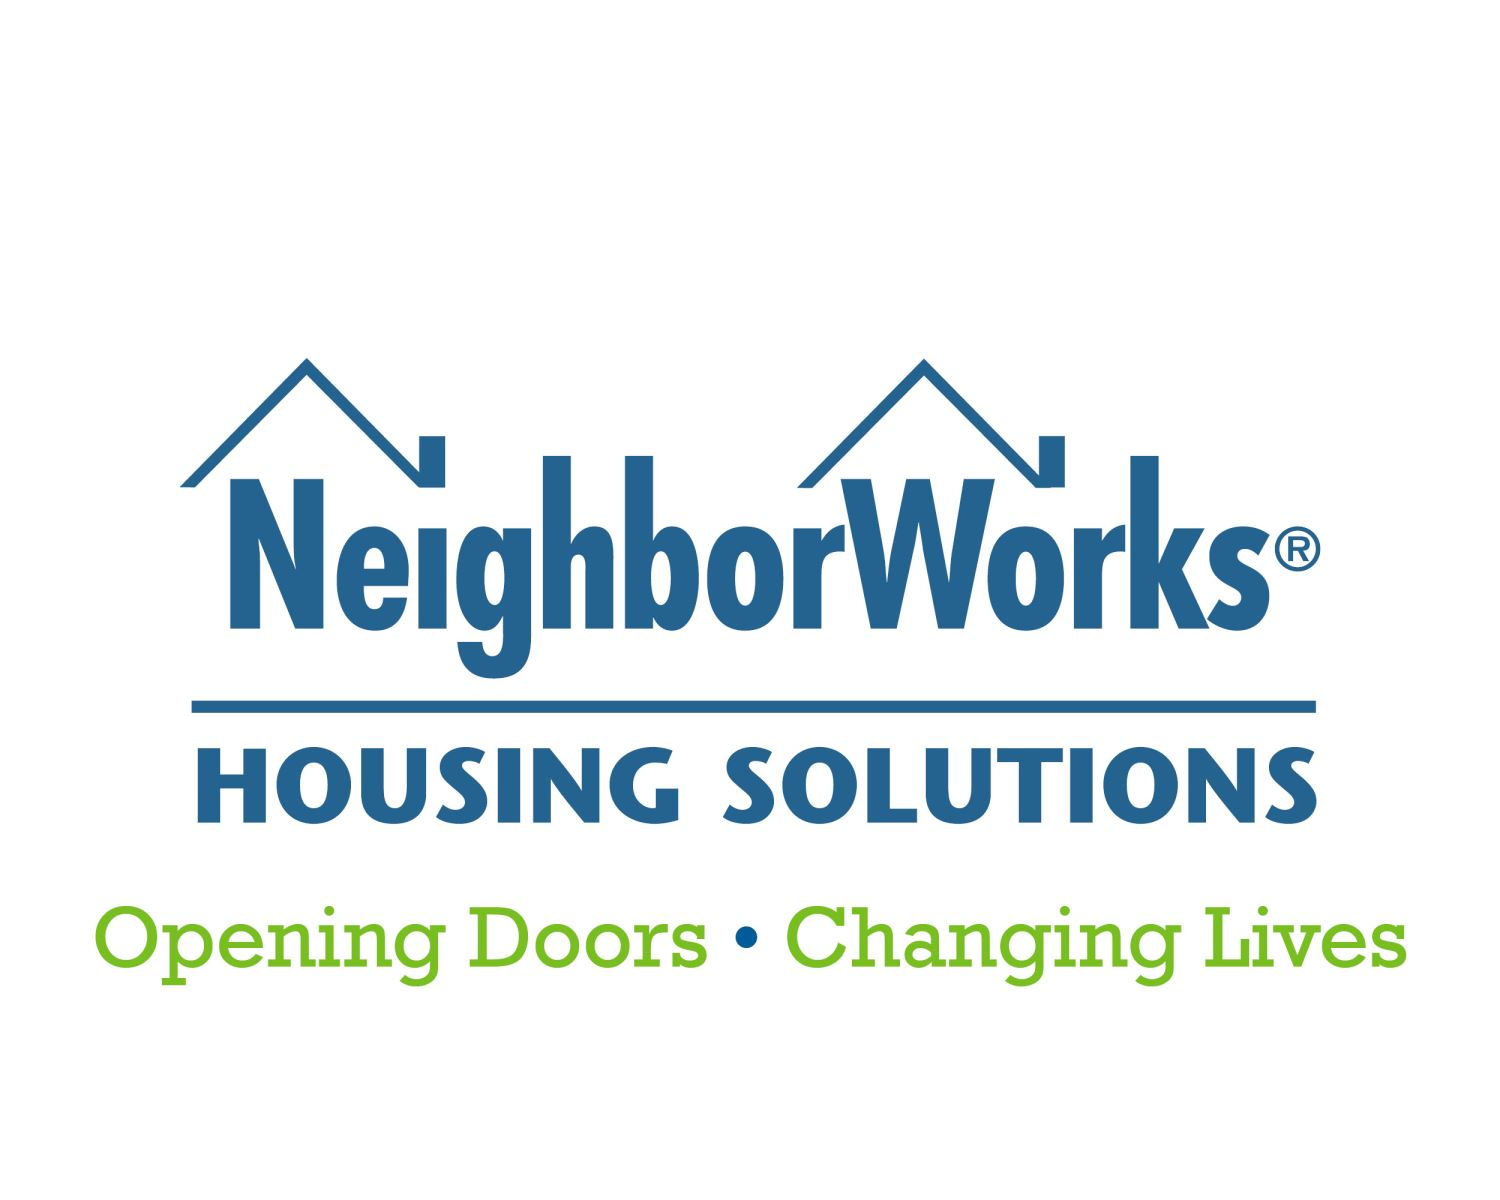 Thank you for supporting NeighborWorks Housing Solutions